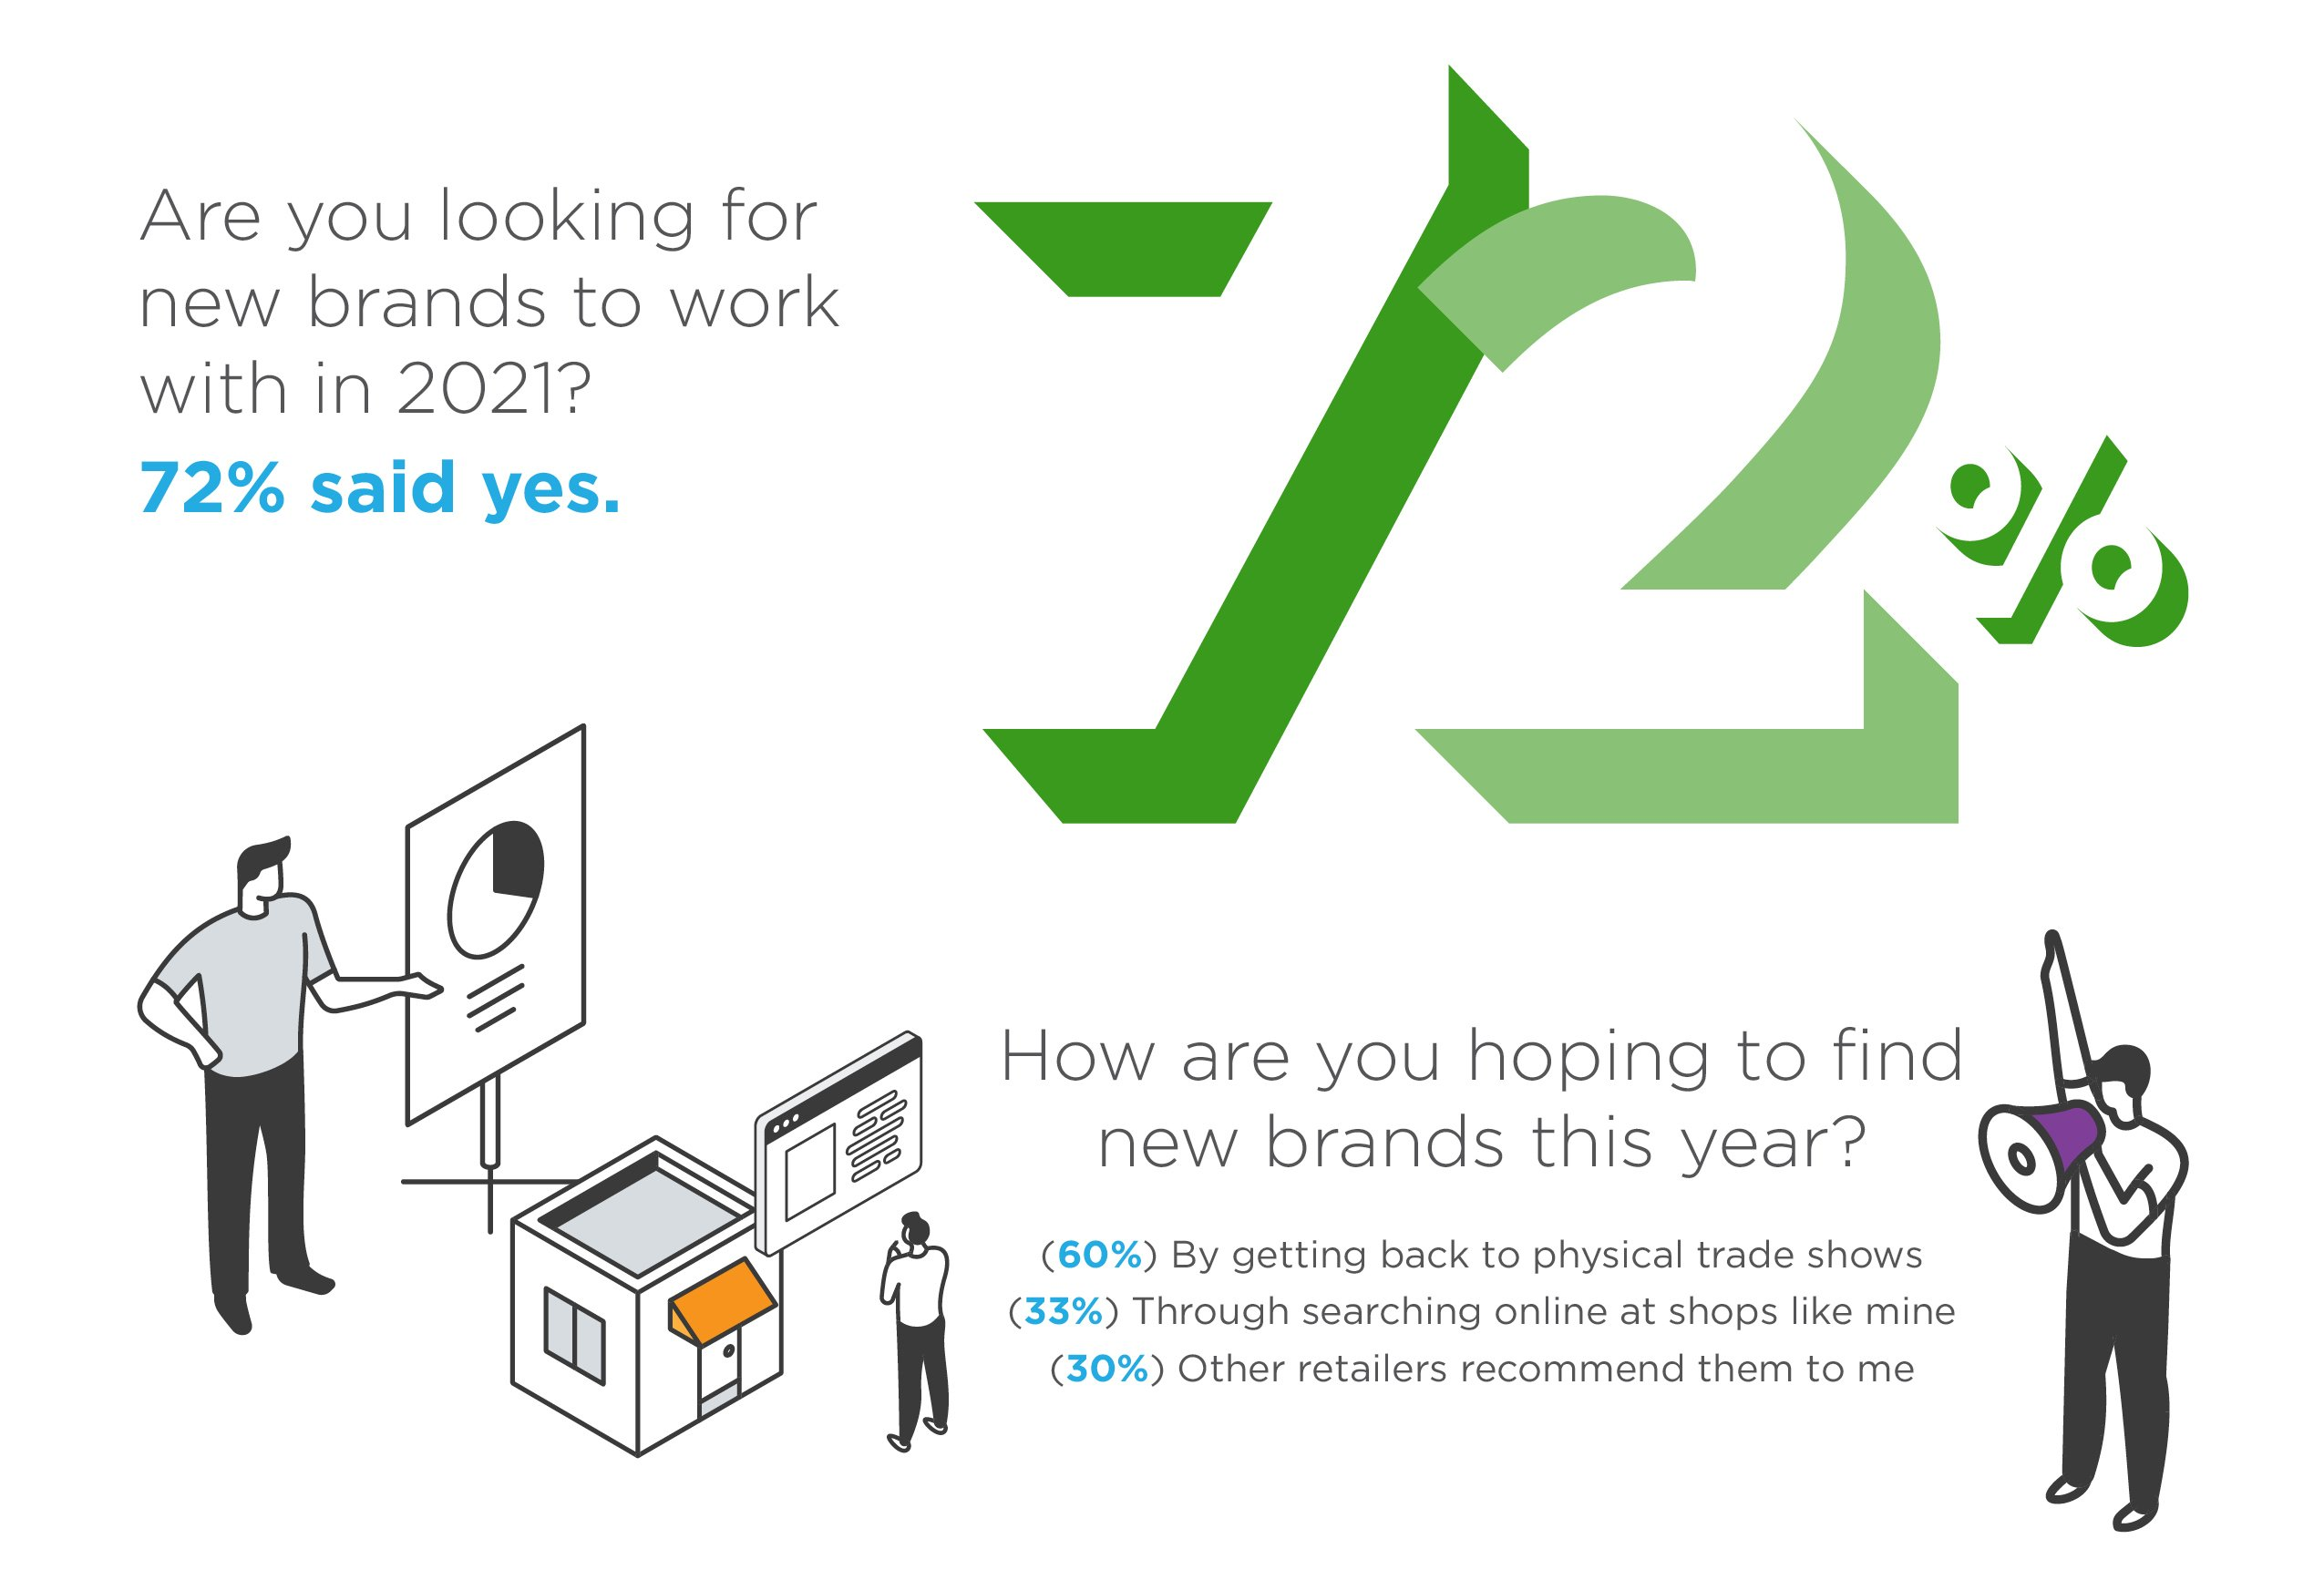 72% of retailers are looking for new brands to work with in 2021